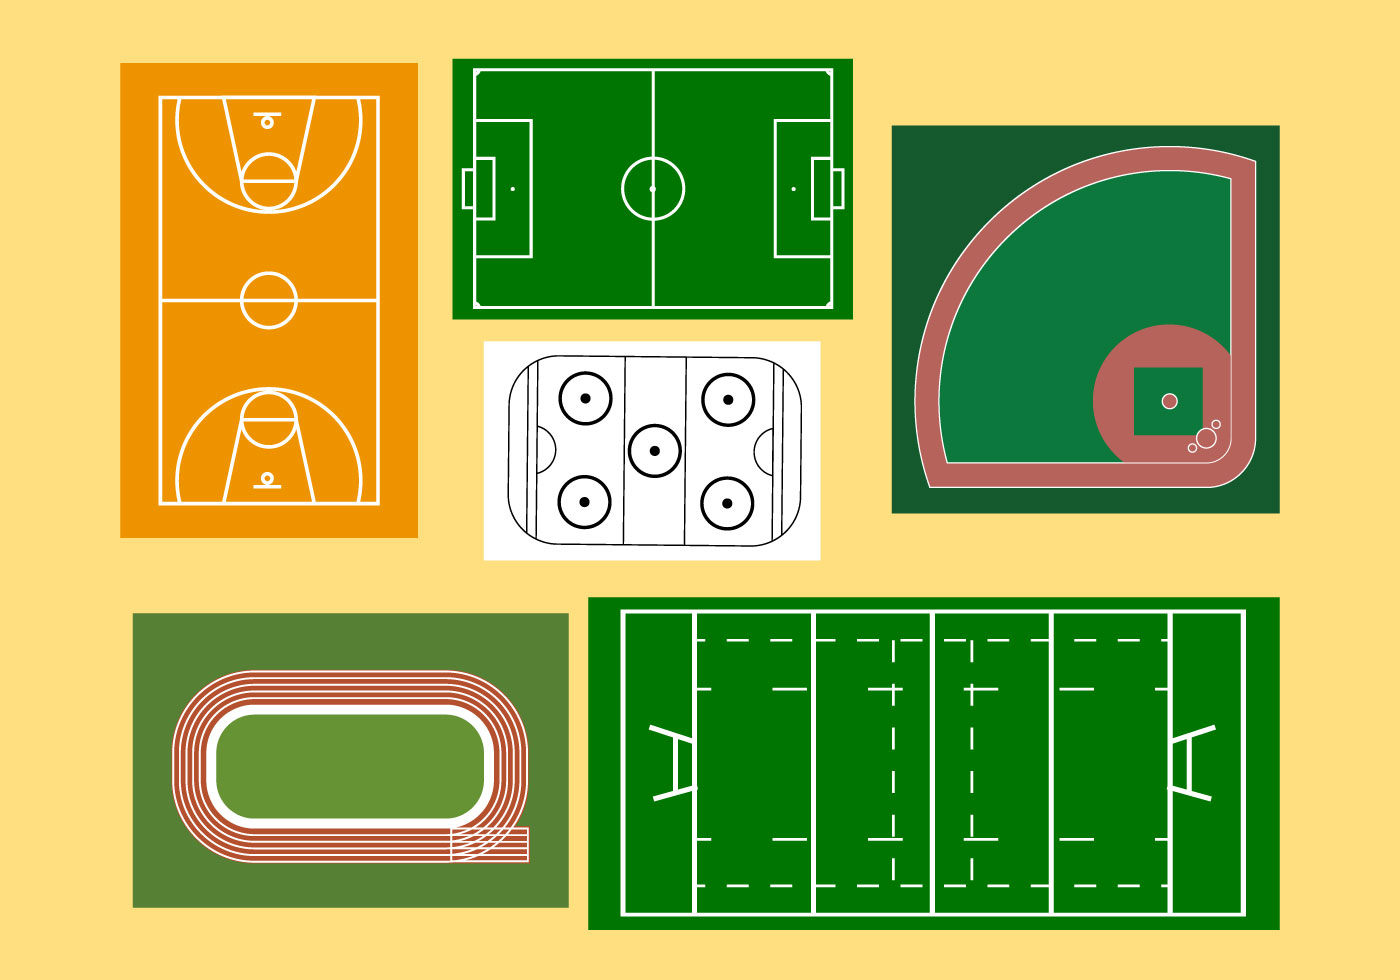 Football field football clipart 8 free downloads 3